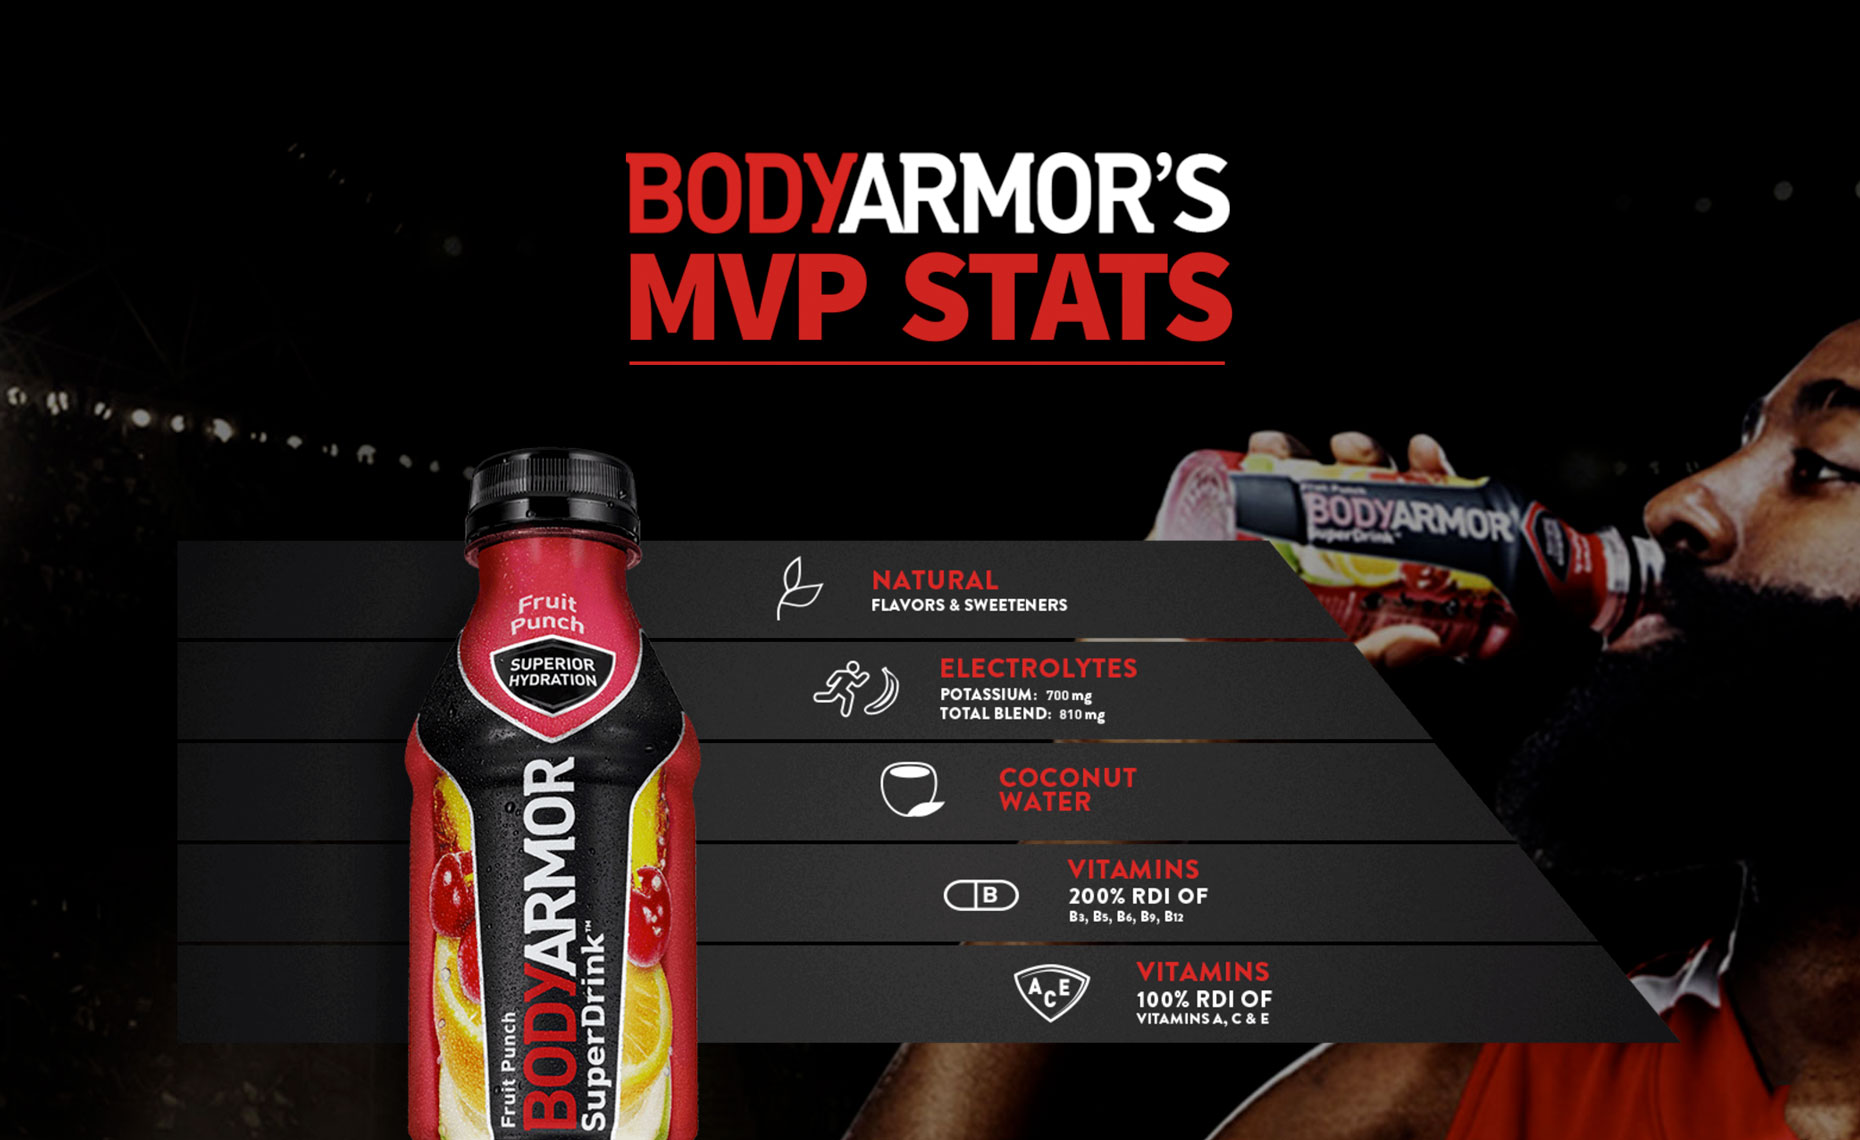 body armor website